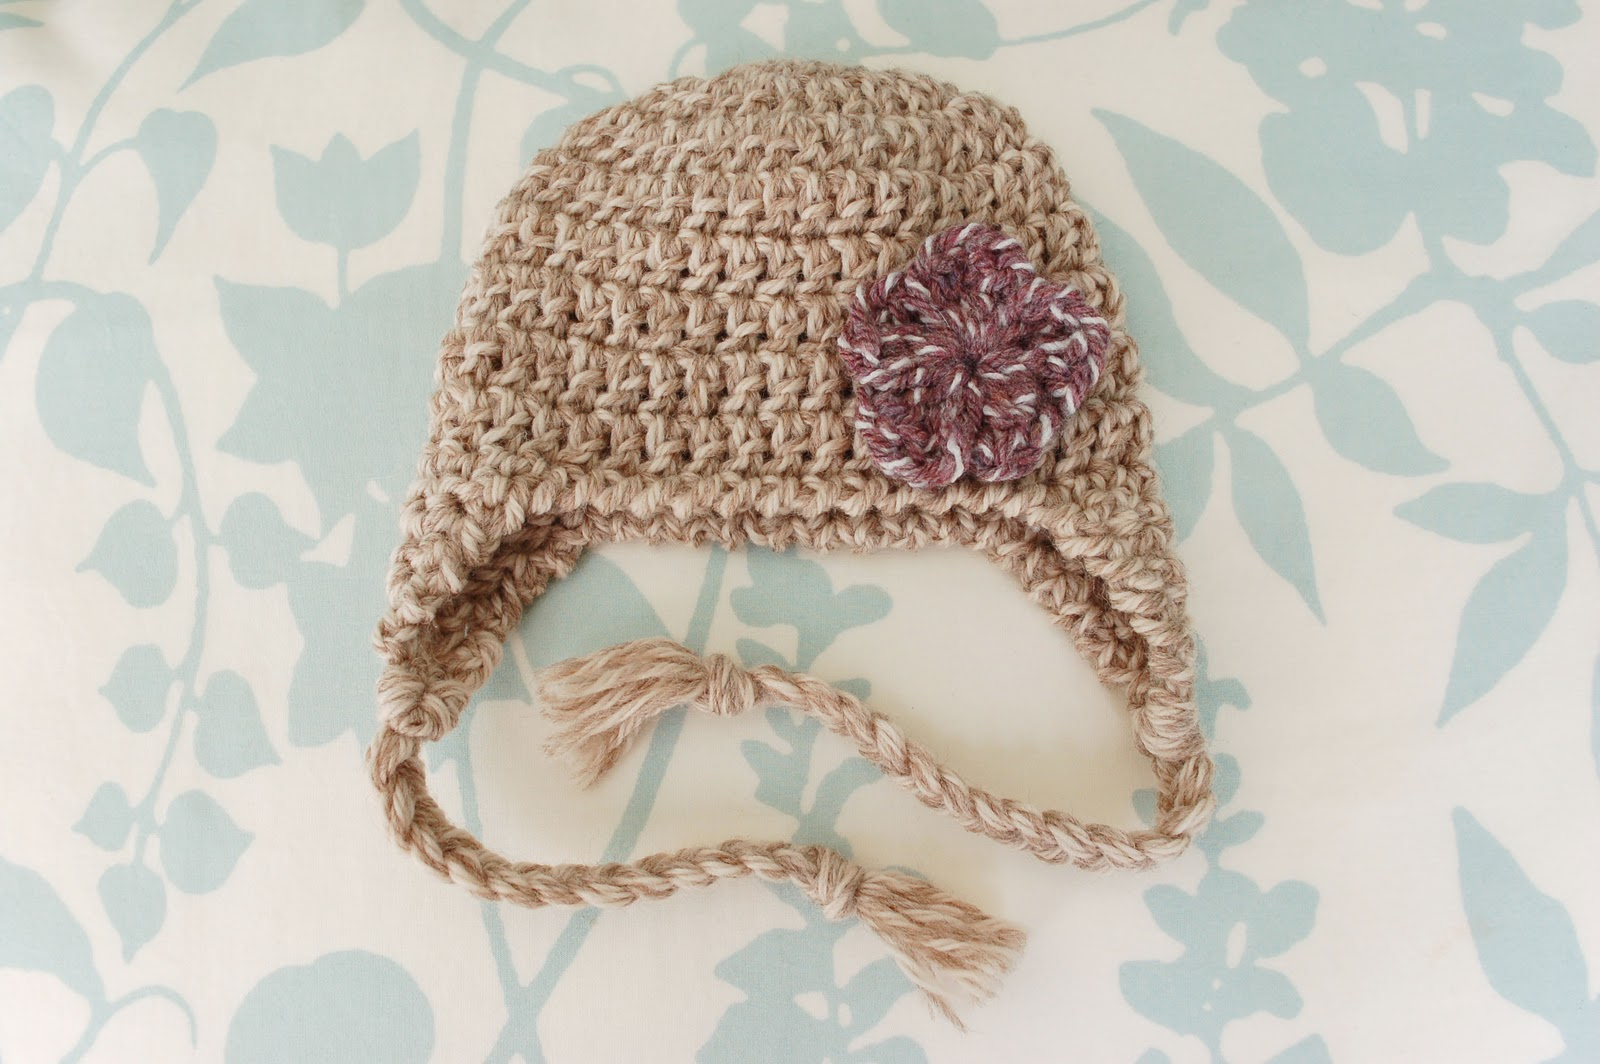 Free Crochet Patterns For Newborn Baby Hats : free crochet cluster hat newborn pattern Car Tuning